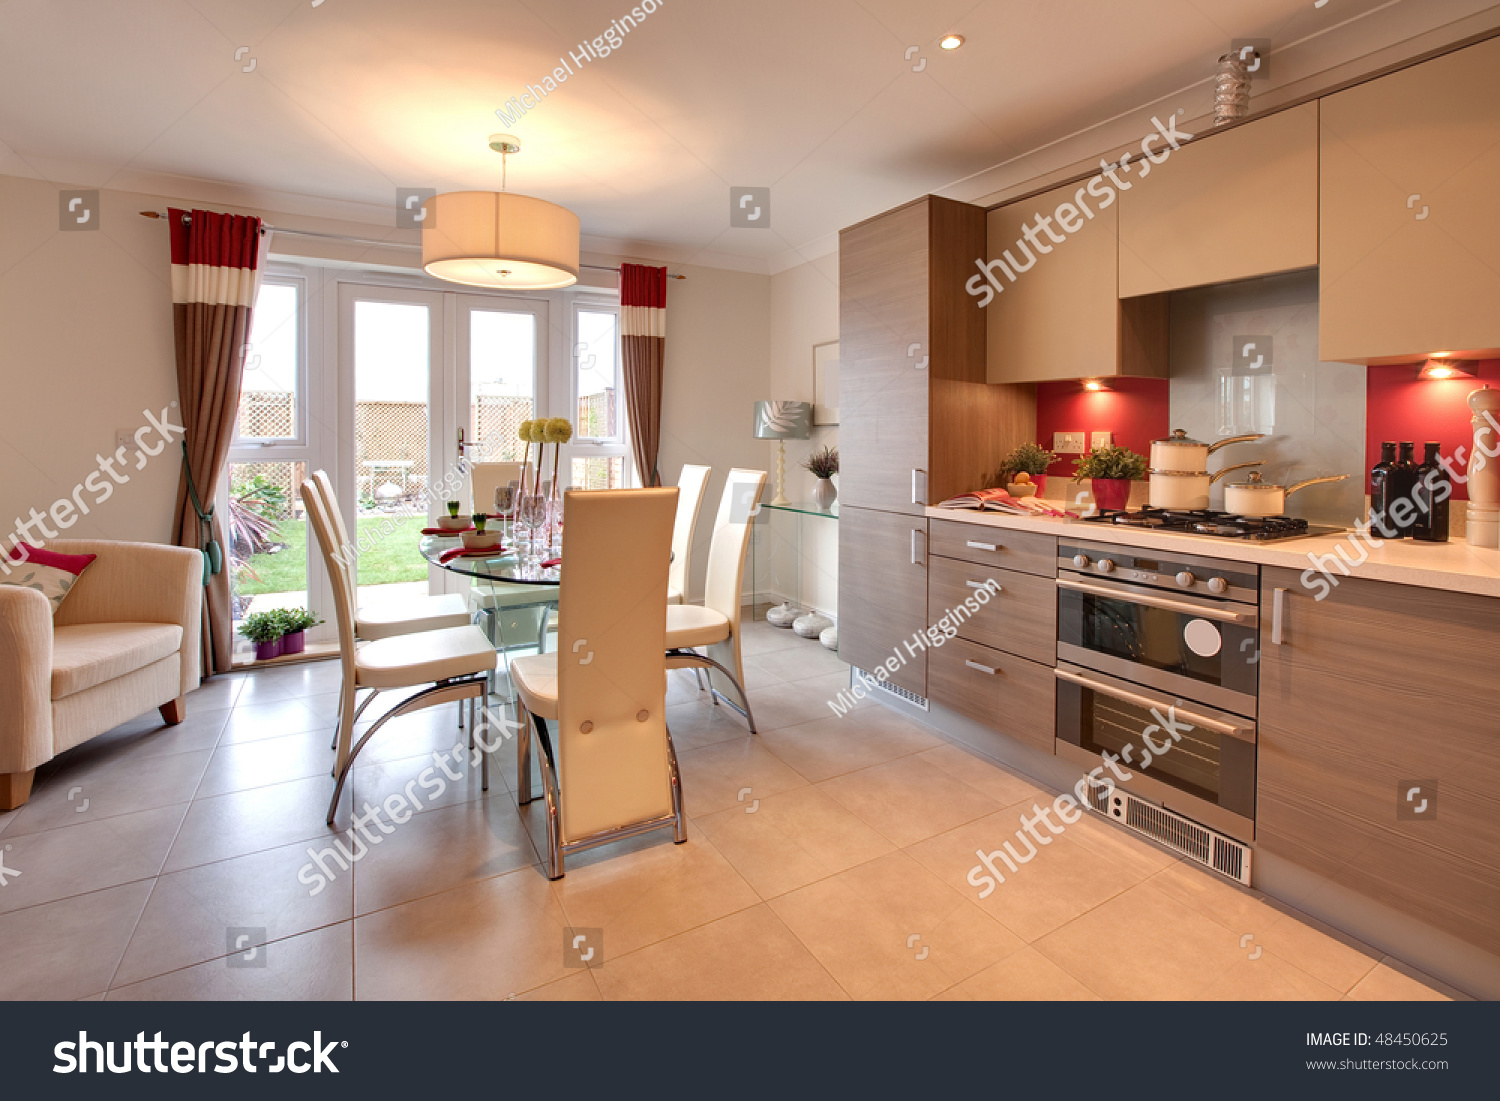 Kitchen Dinner Stylish Modern Kitchen With Table Set For Dinner Within Chic Home